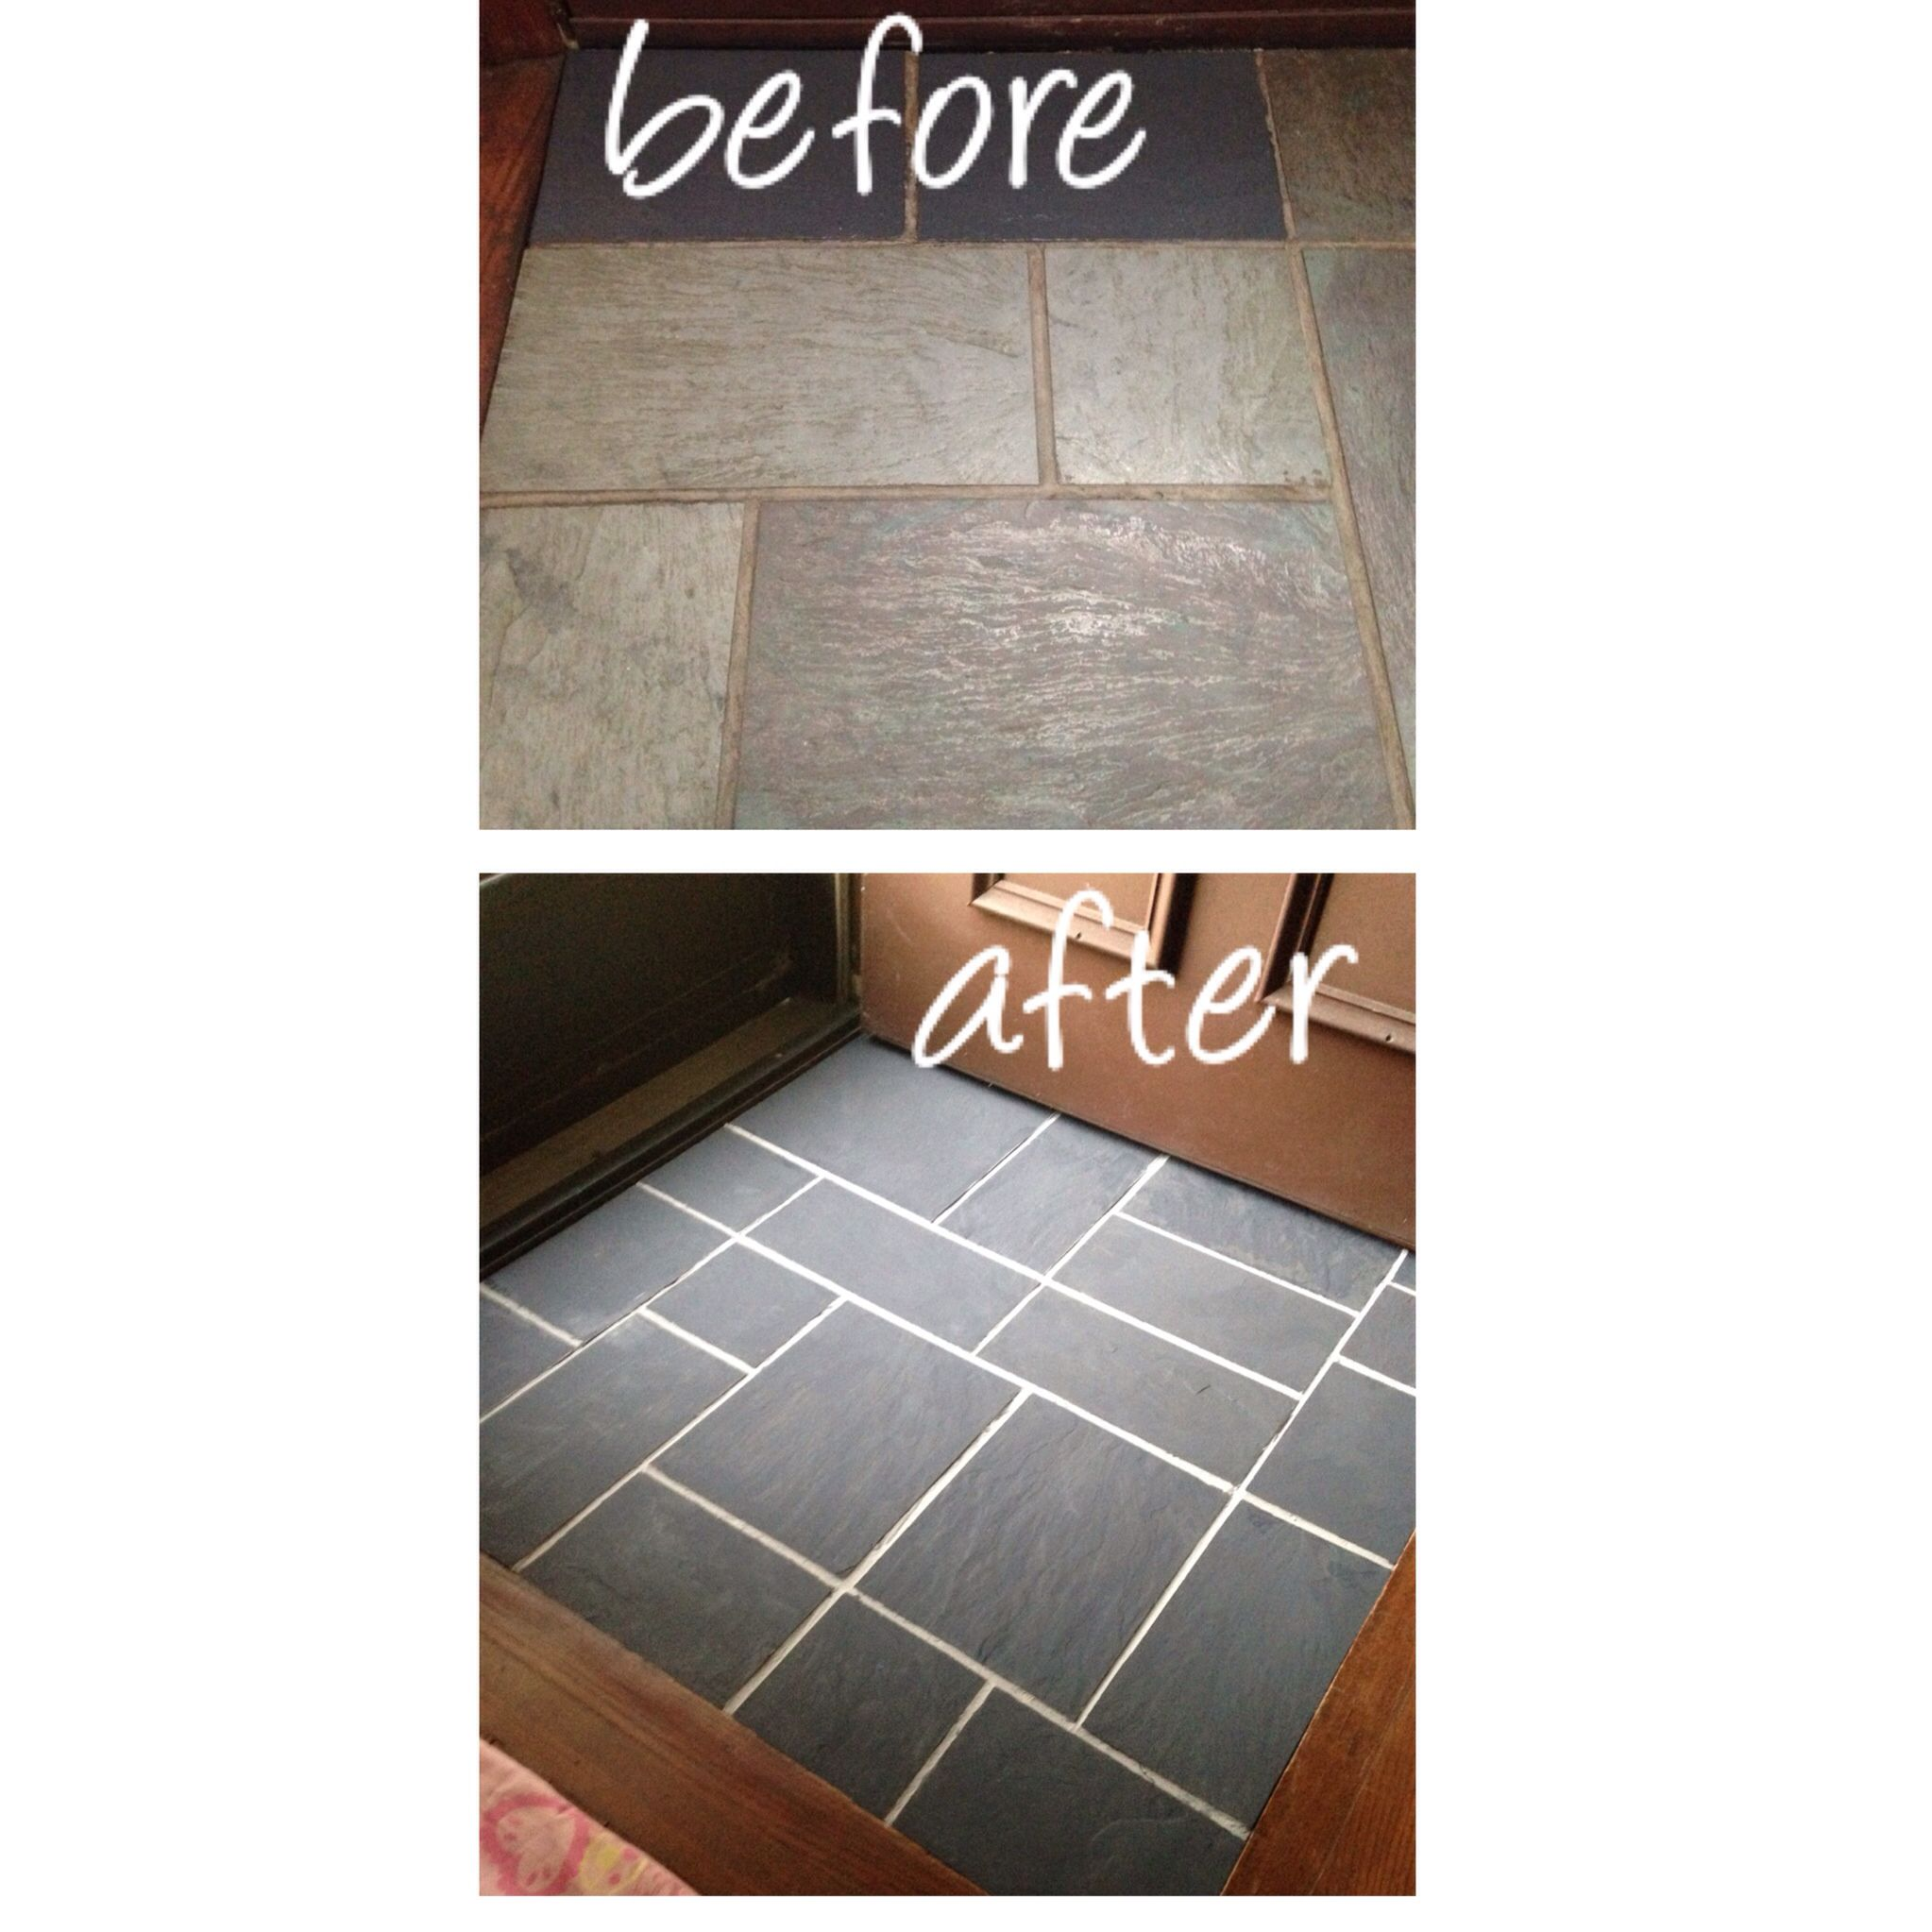 How To Remove Gloss Paint From Tiles